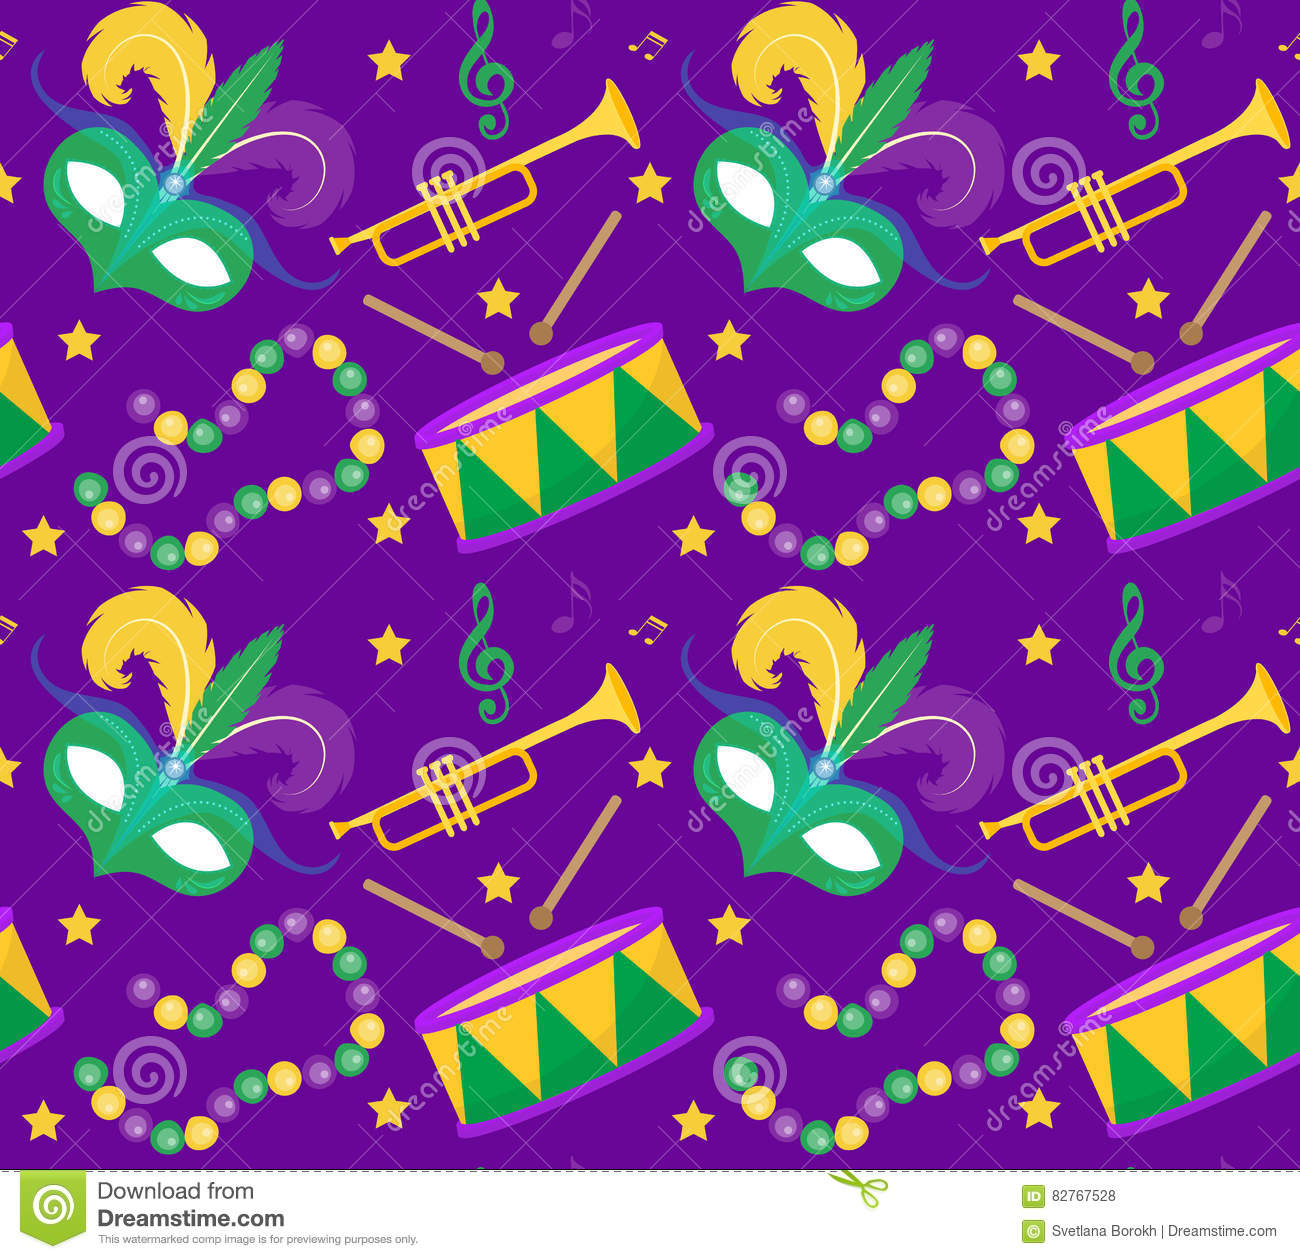 mardi gras beads wallpaper - mardi gras beads | pics4learning - mtm